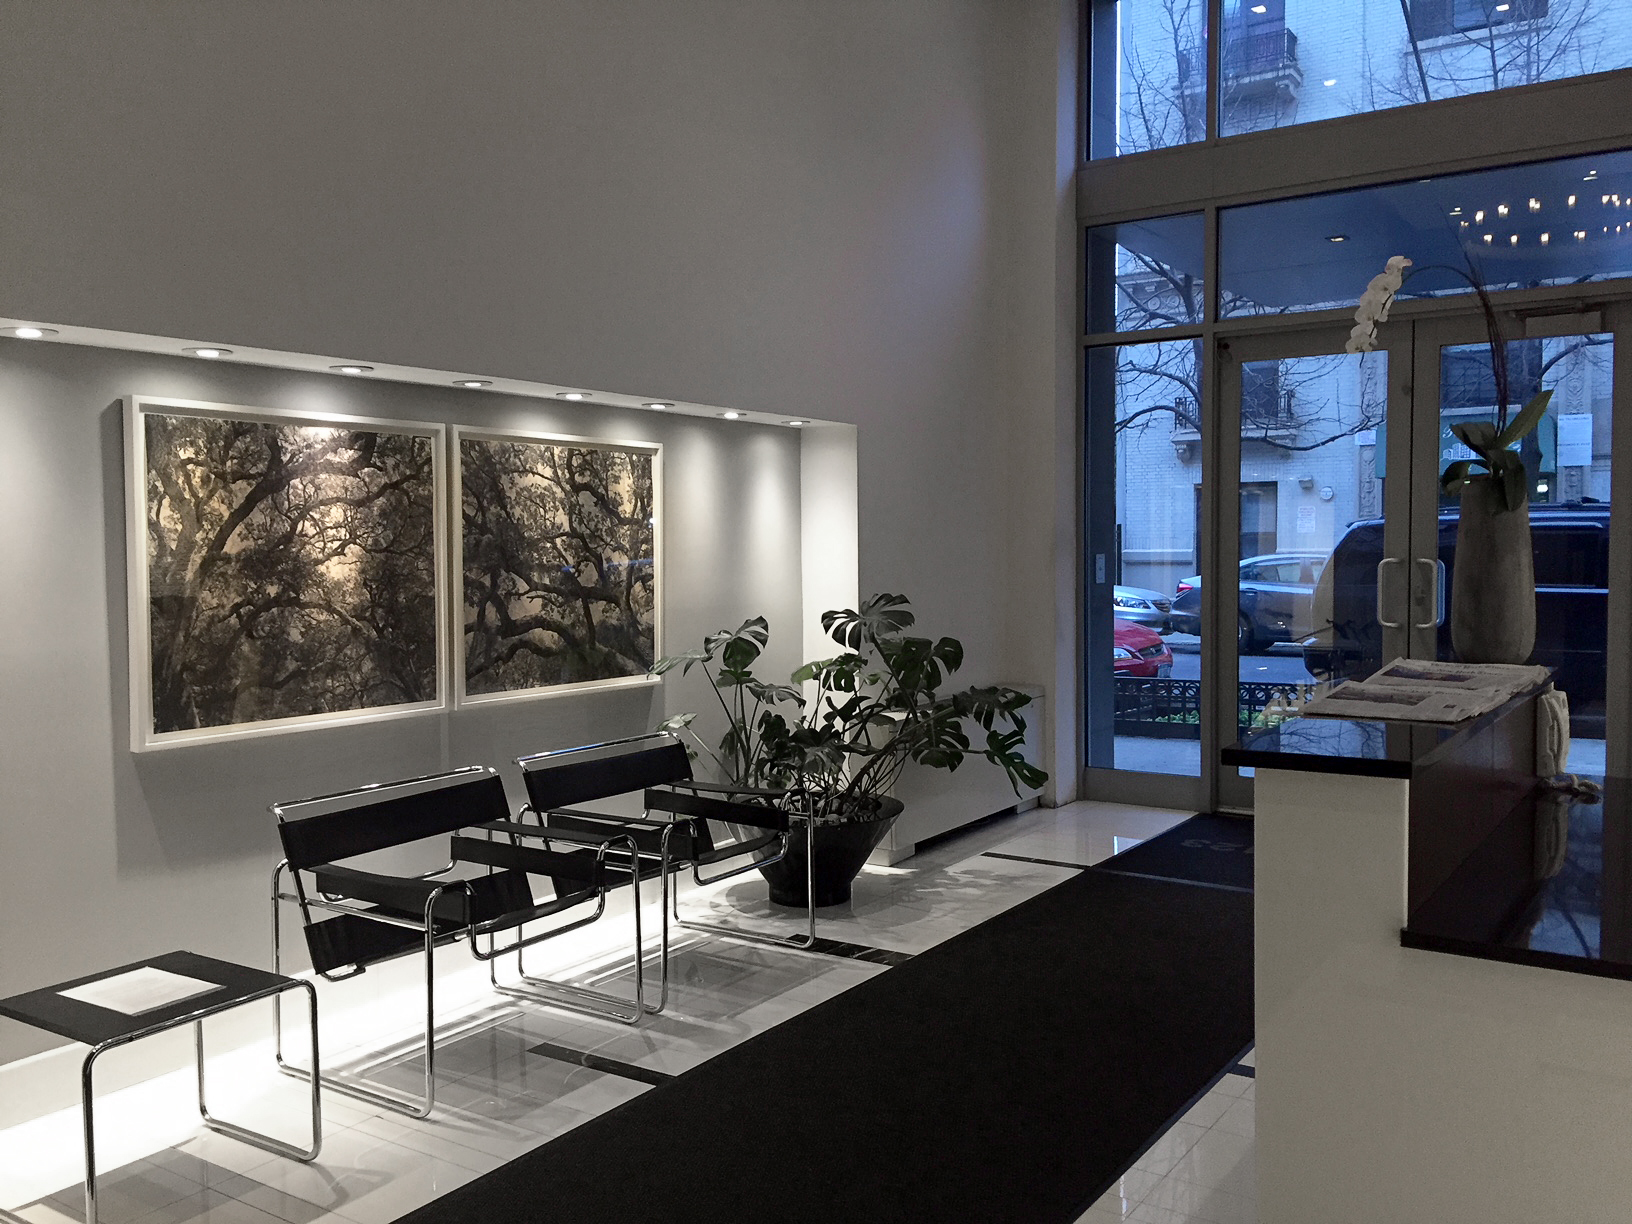 Live Oak Toile Diptych,  2010   Installation shot - Lobby of 117 West 123rd Street, New York, NY